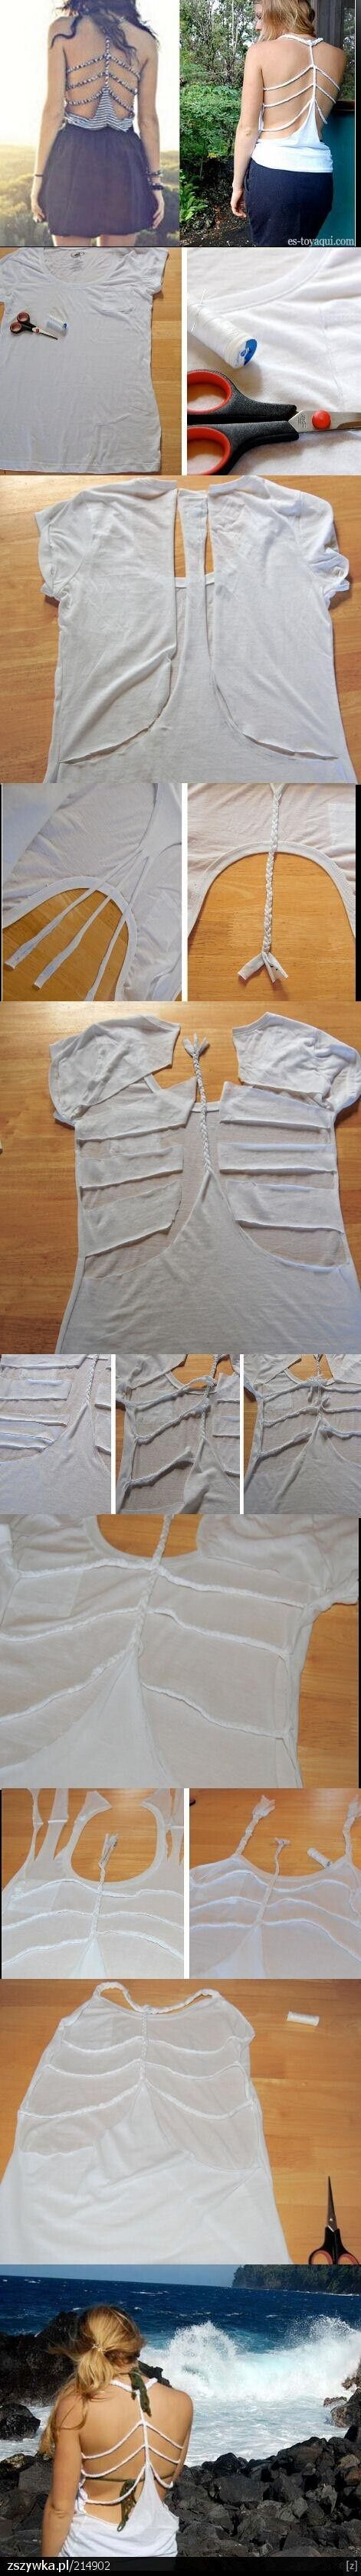 40 Simple No Sew DIY Clothing Hacks, Designs And Ideas